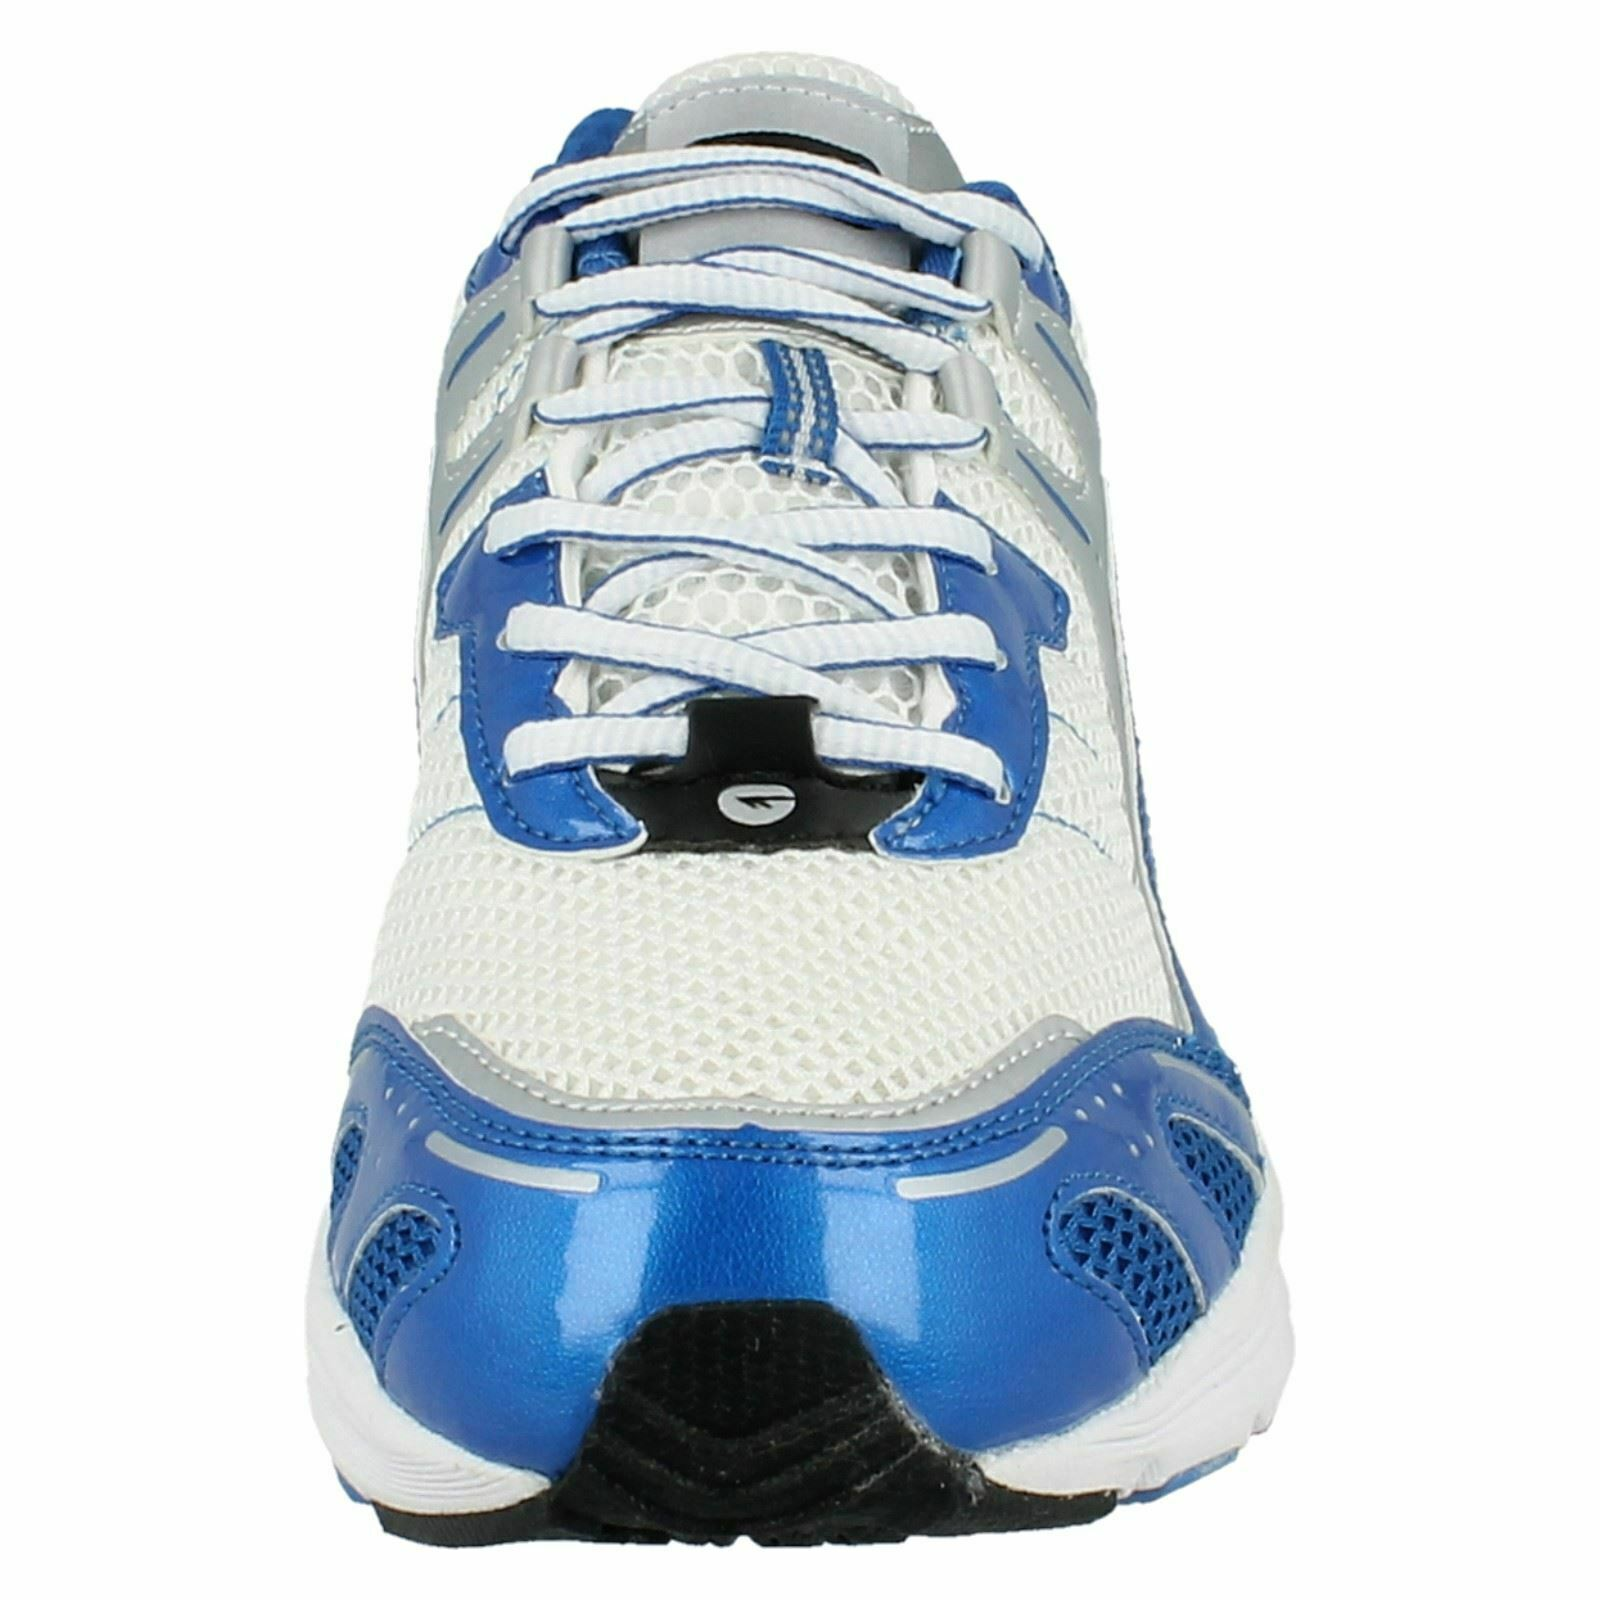 MENS HI TEC LIGHTWEIGHT LACE UP RUNNING GYM SPORTS TRAINERS - DASH SIZE 7